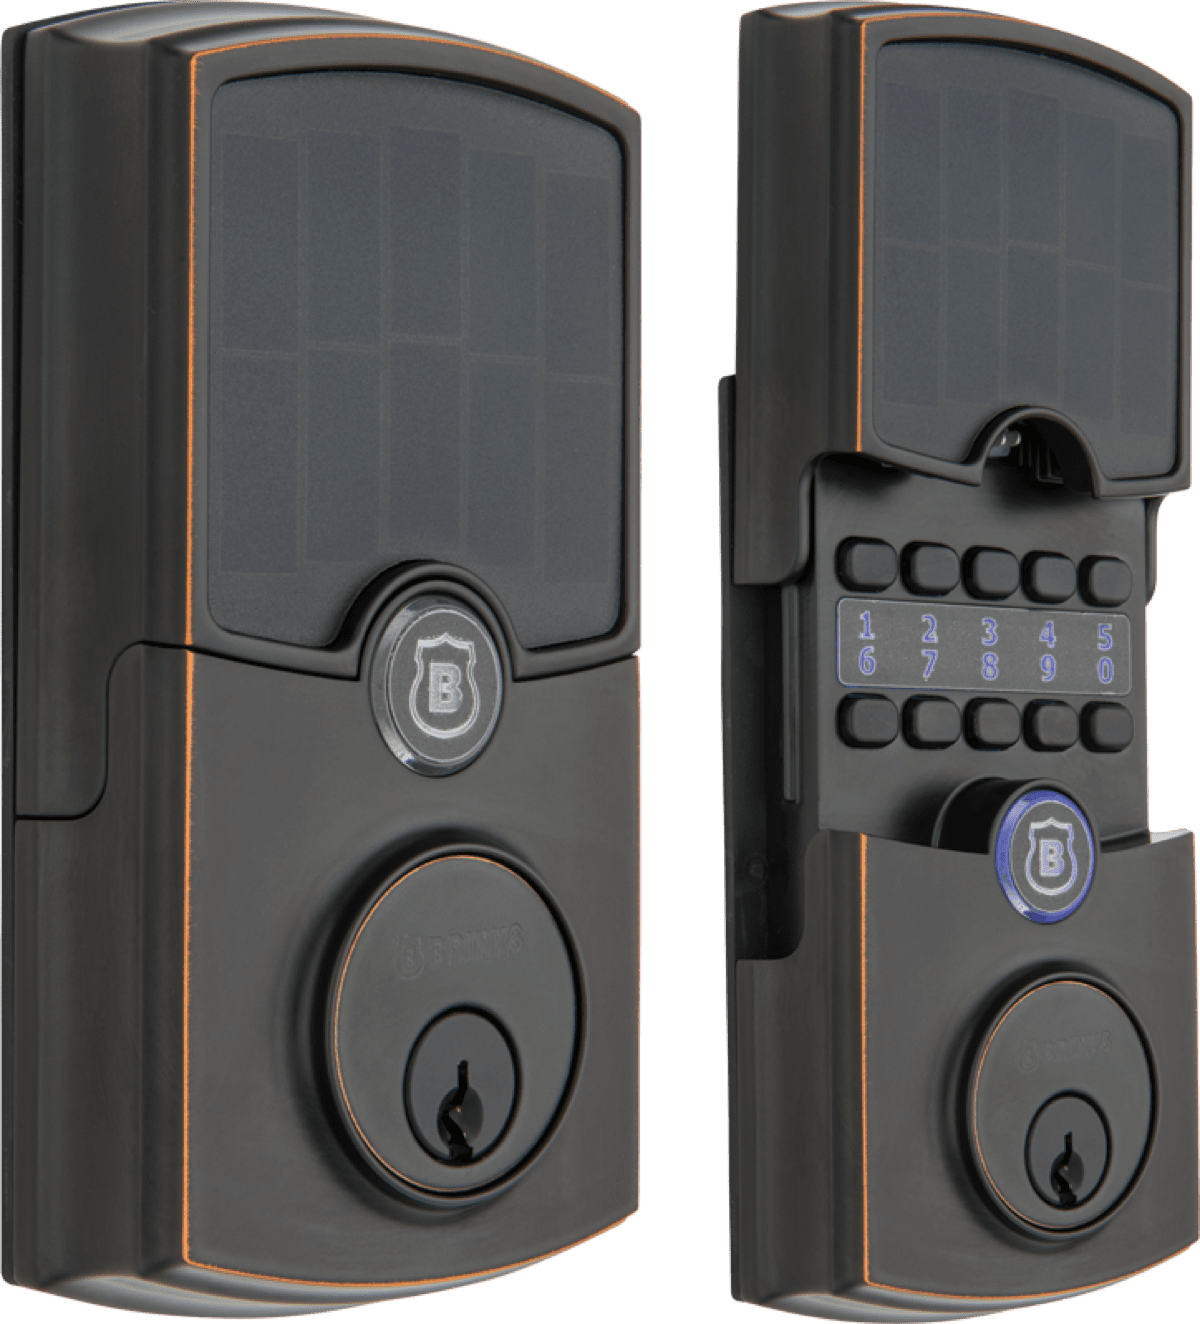 Image of ARRAY smart deadbolt.